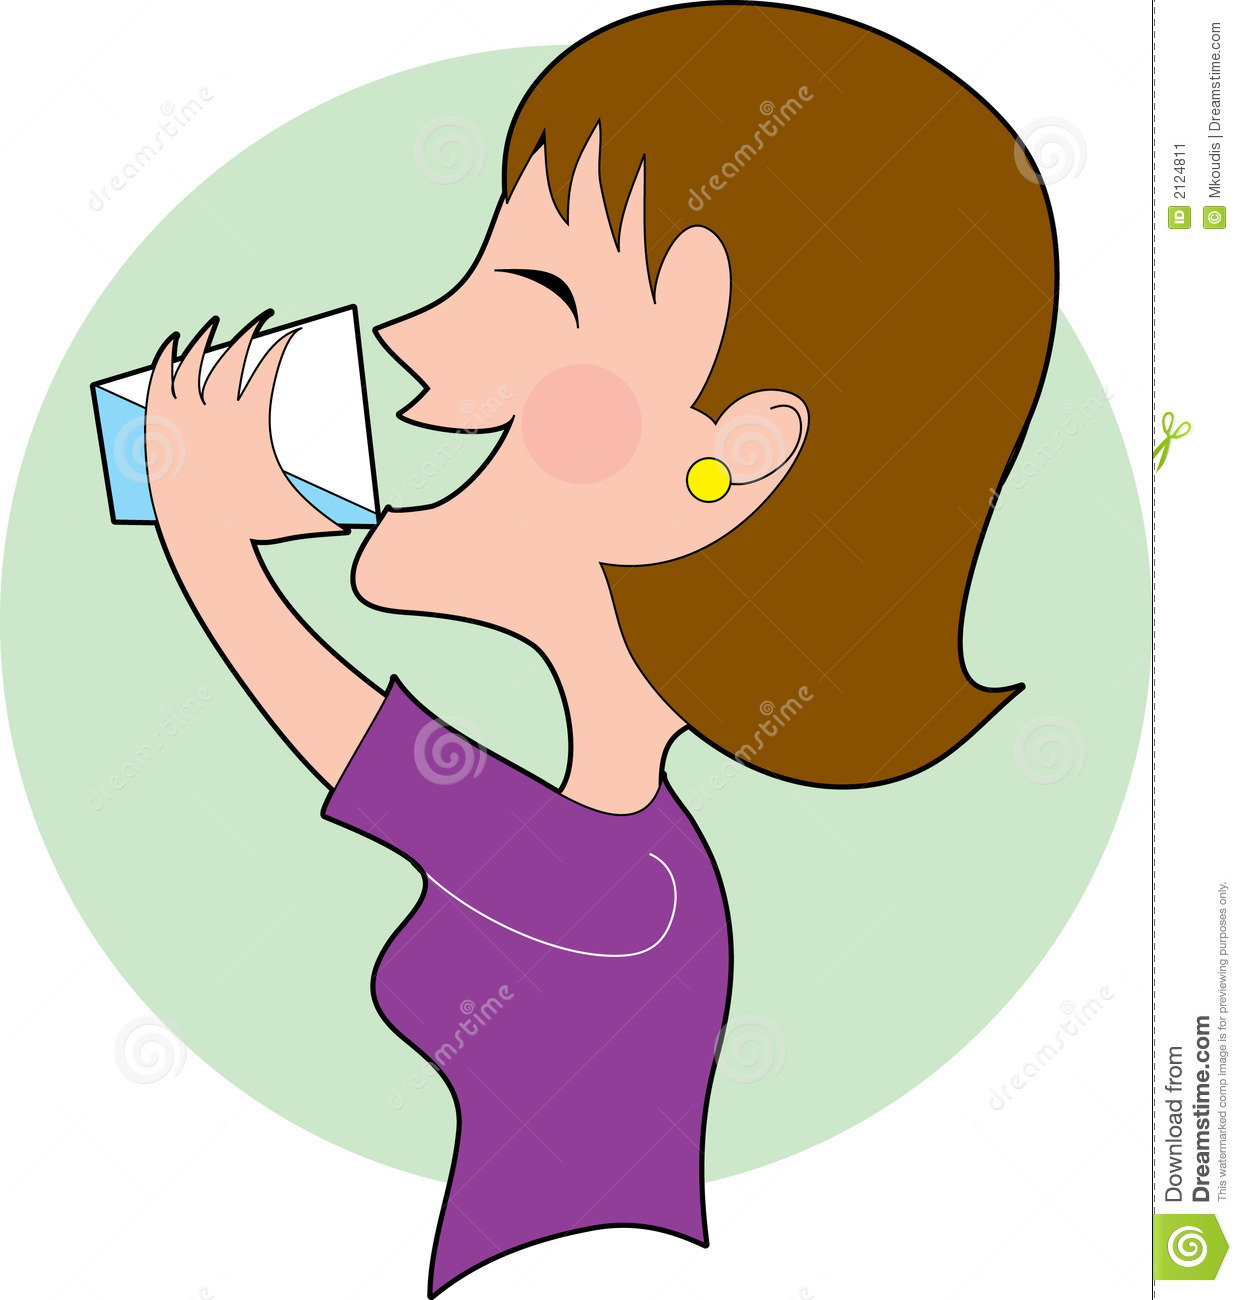 Clip Art Drinking Clipart drinking alcohol clipart kid people water woman water